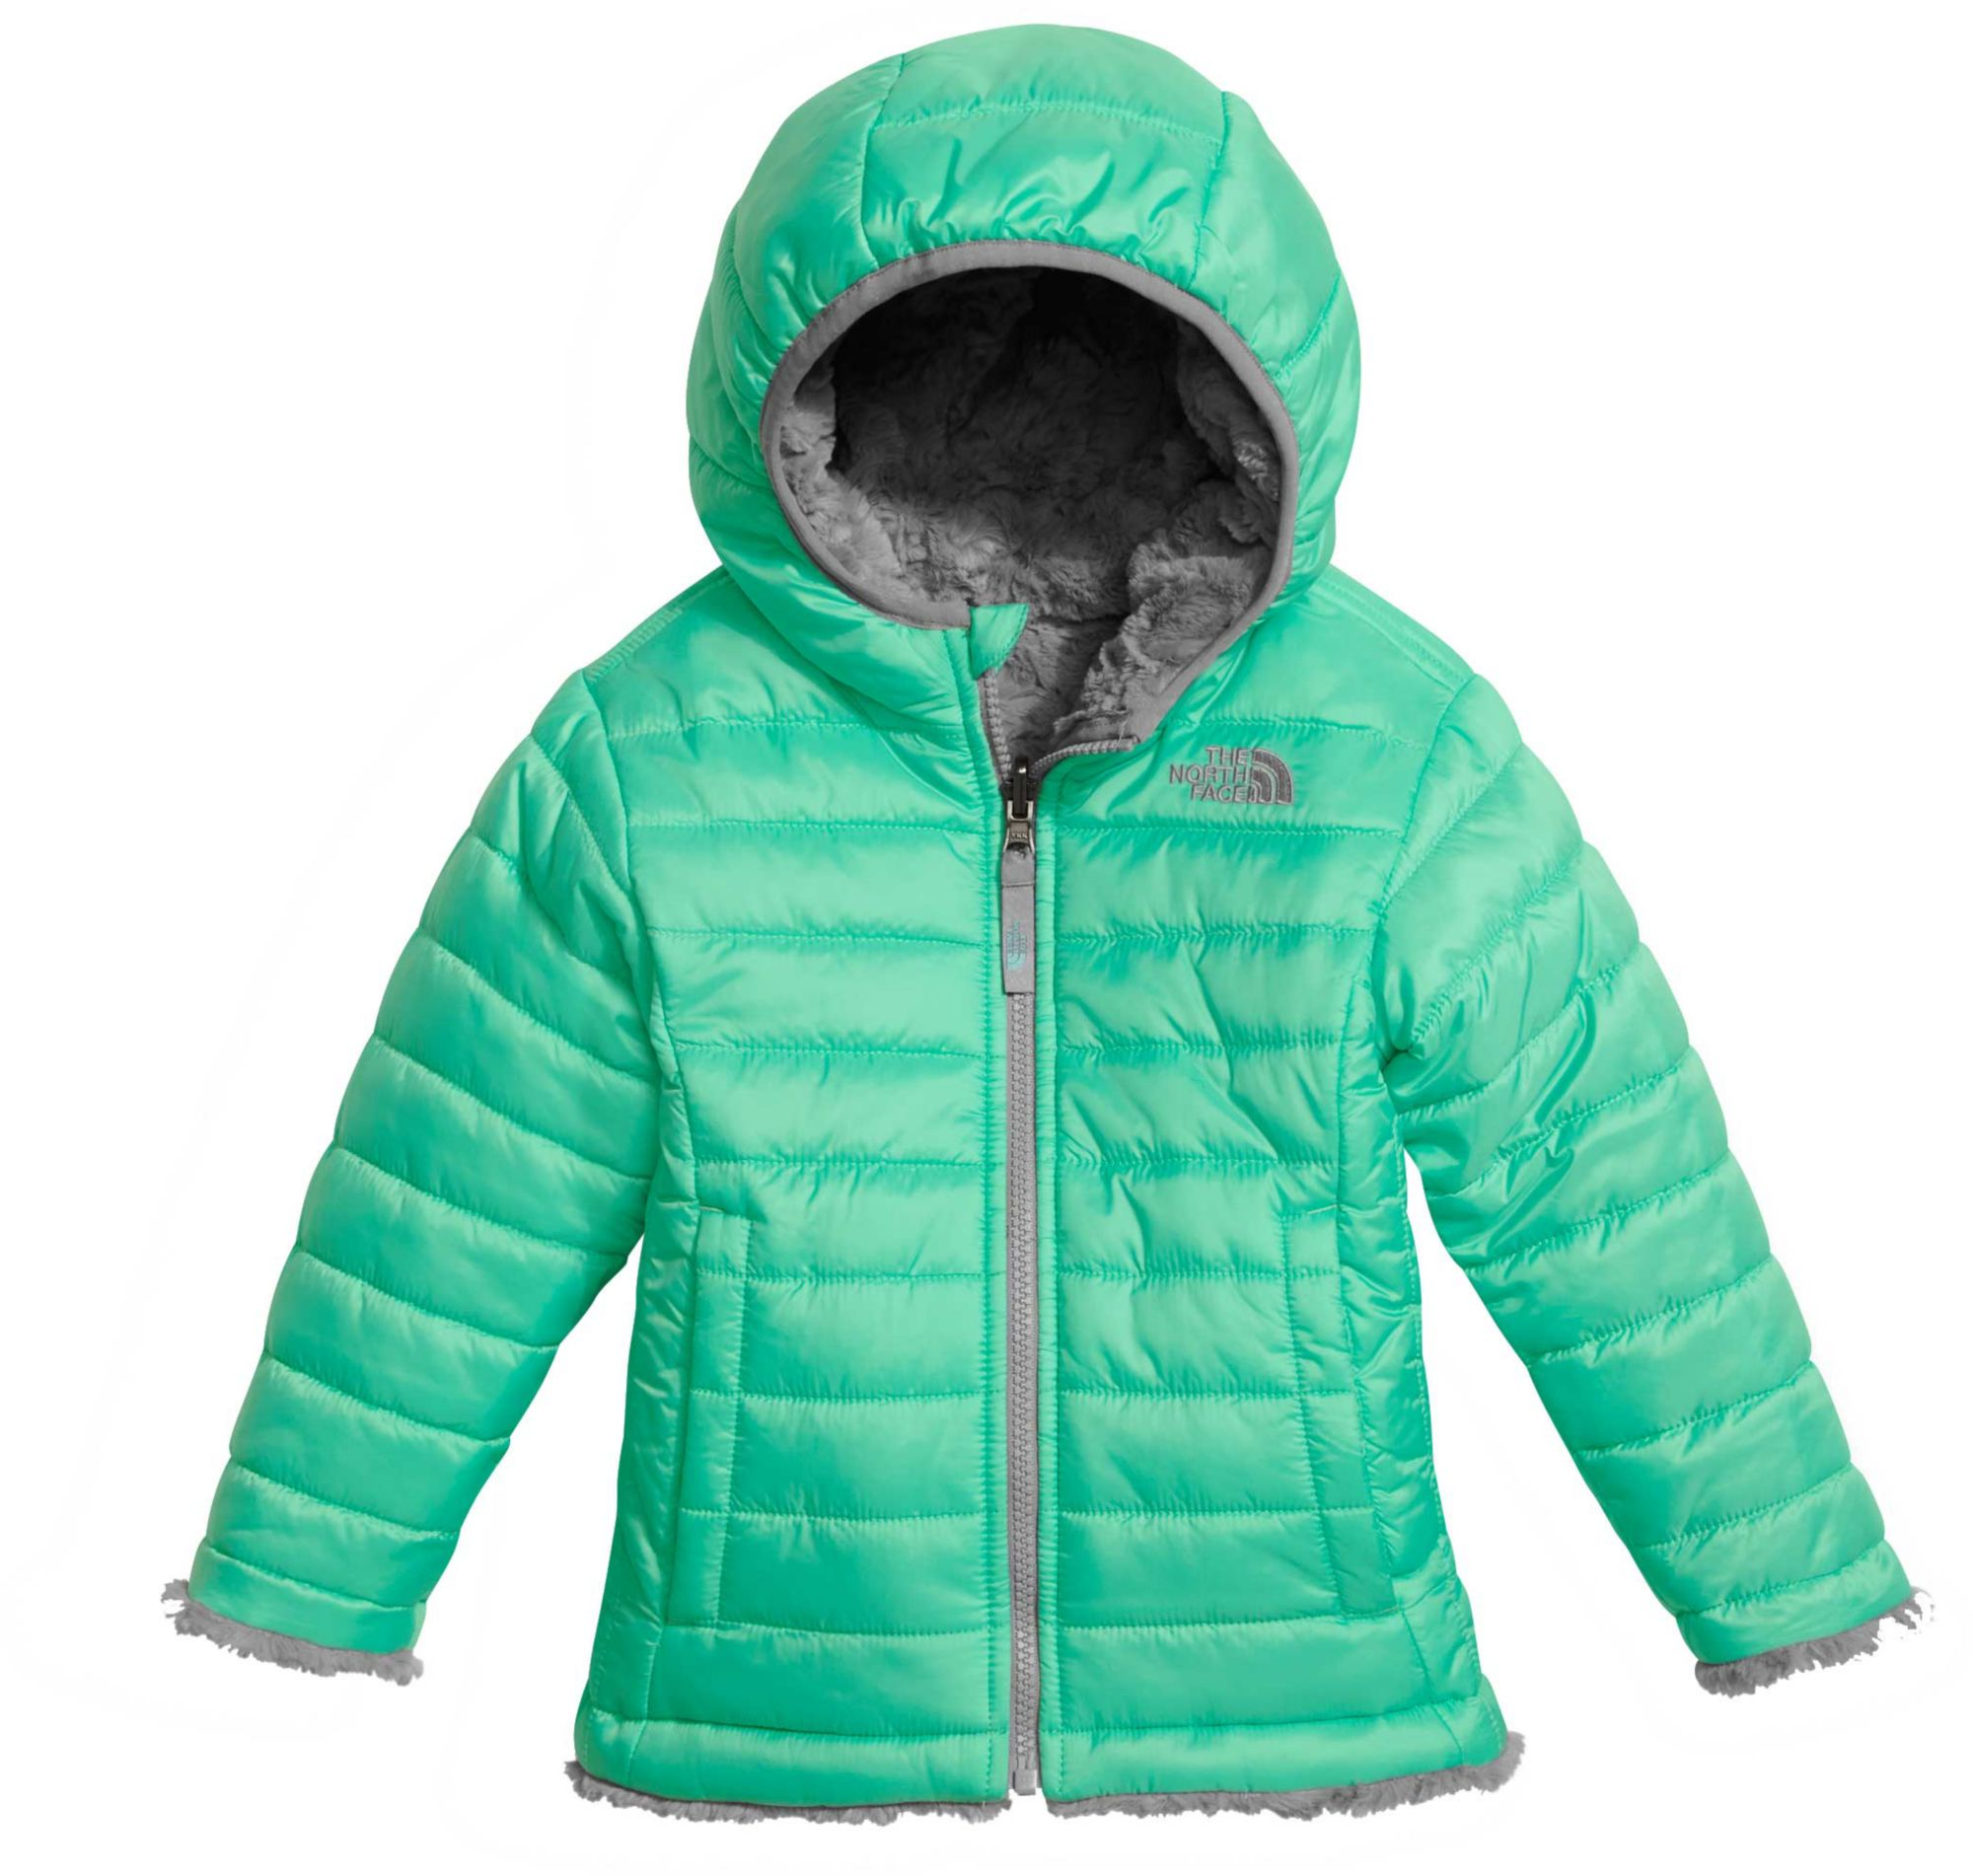 Toddler Girls' Winter Coats & Jackets | DICK'S Sporting Goods